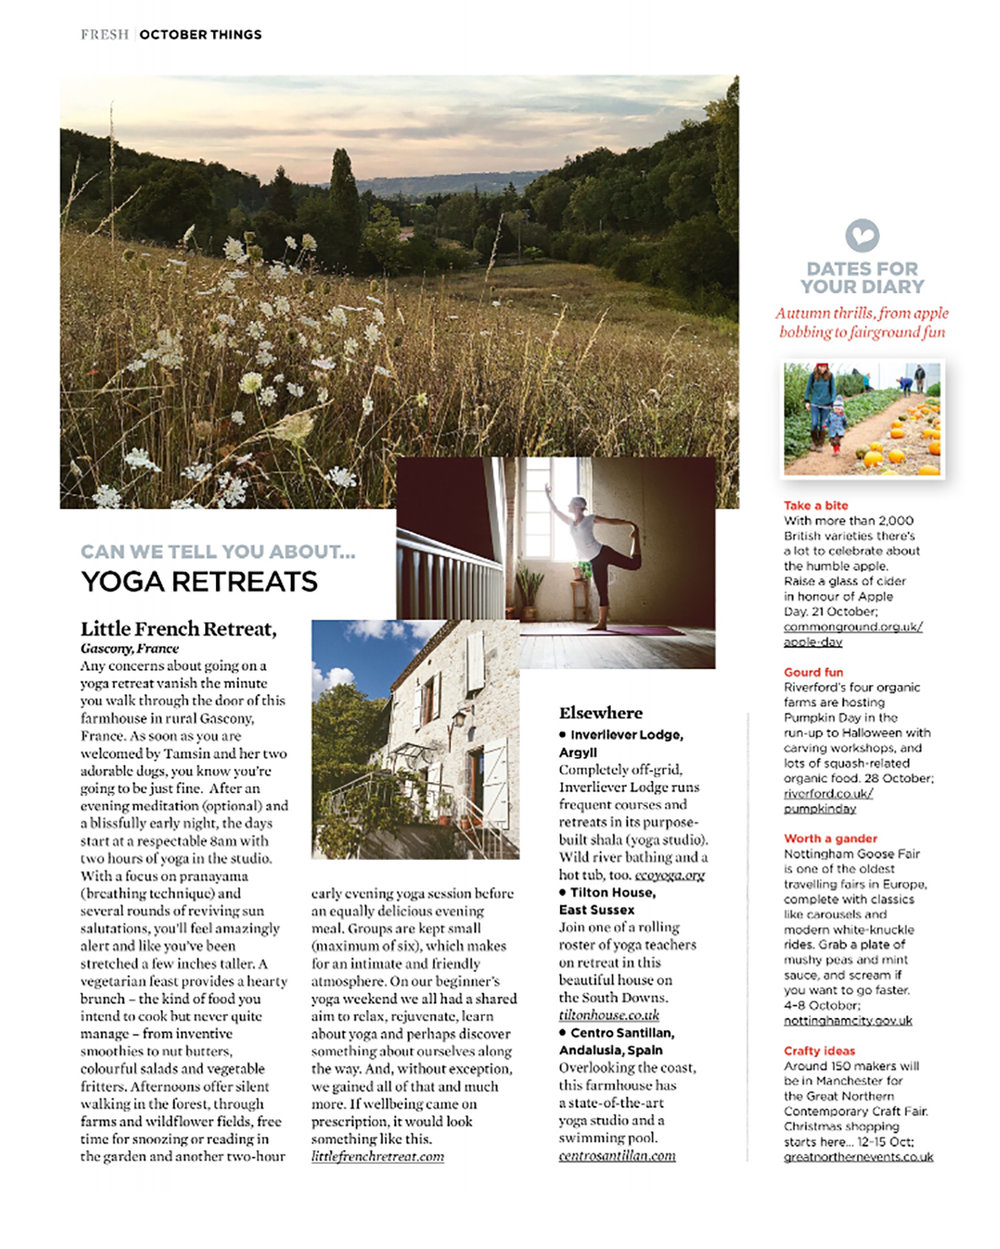 Little French Retreat review: The Simple Things Magazine.jpg